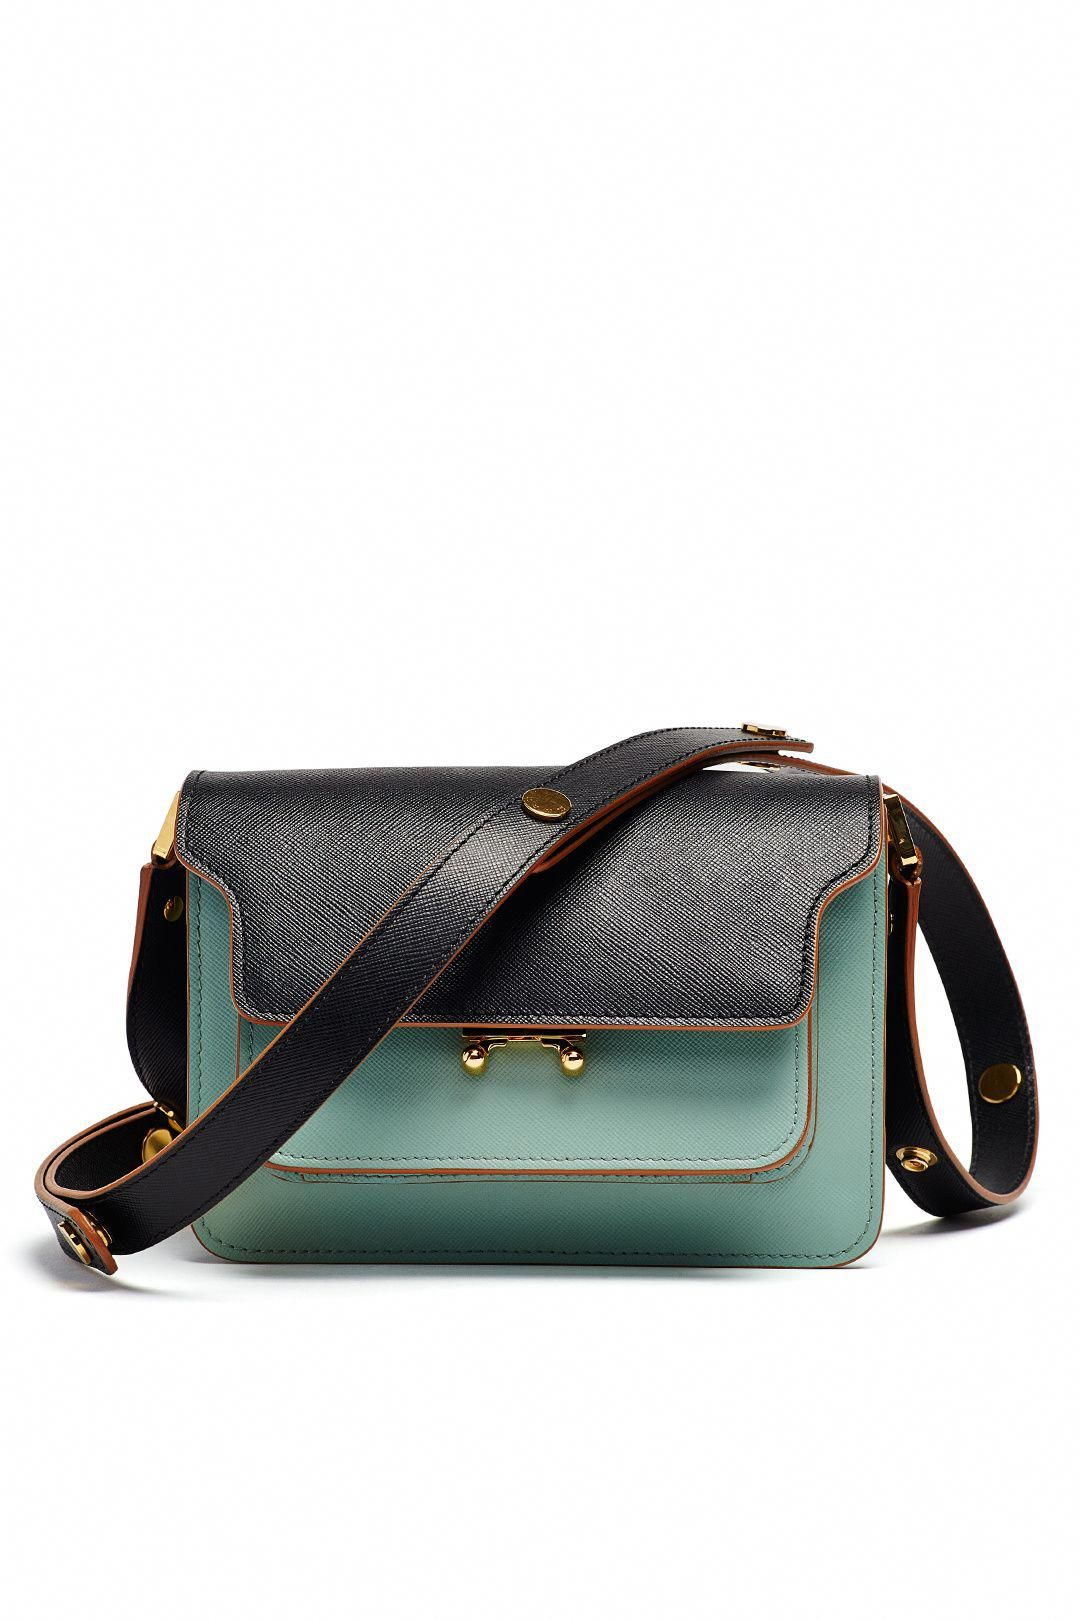 Rent Tea Green Trunk Shoulder Bag By Marni Accessories For 295 Only At The Runway